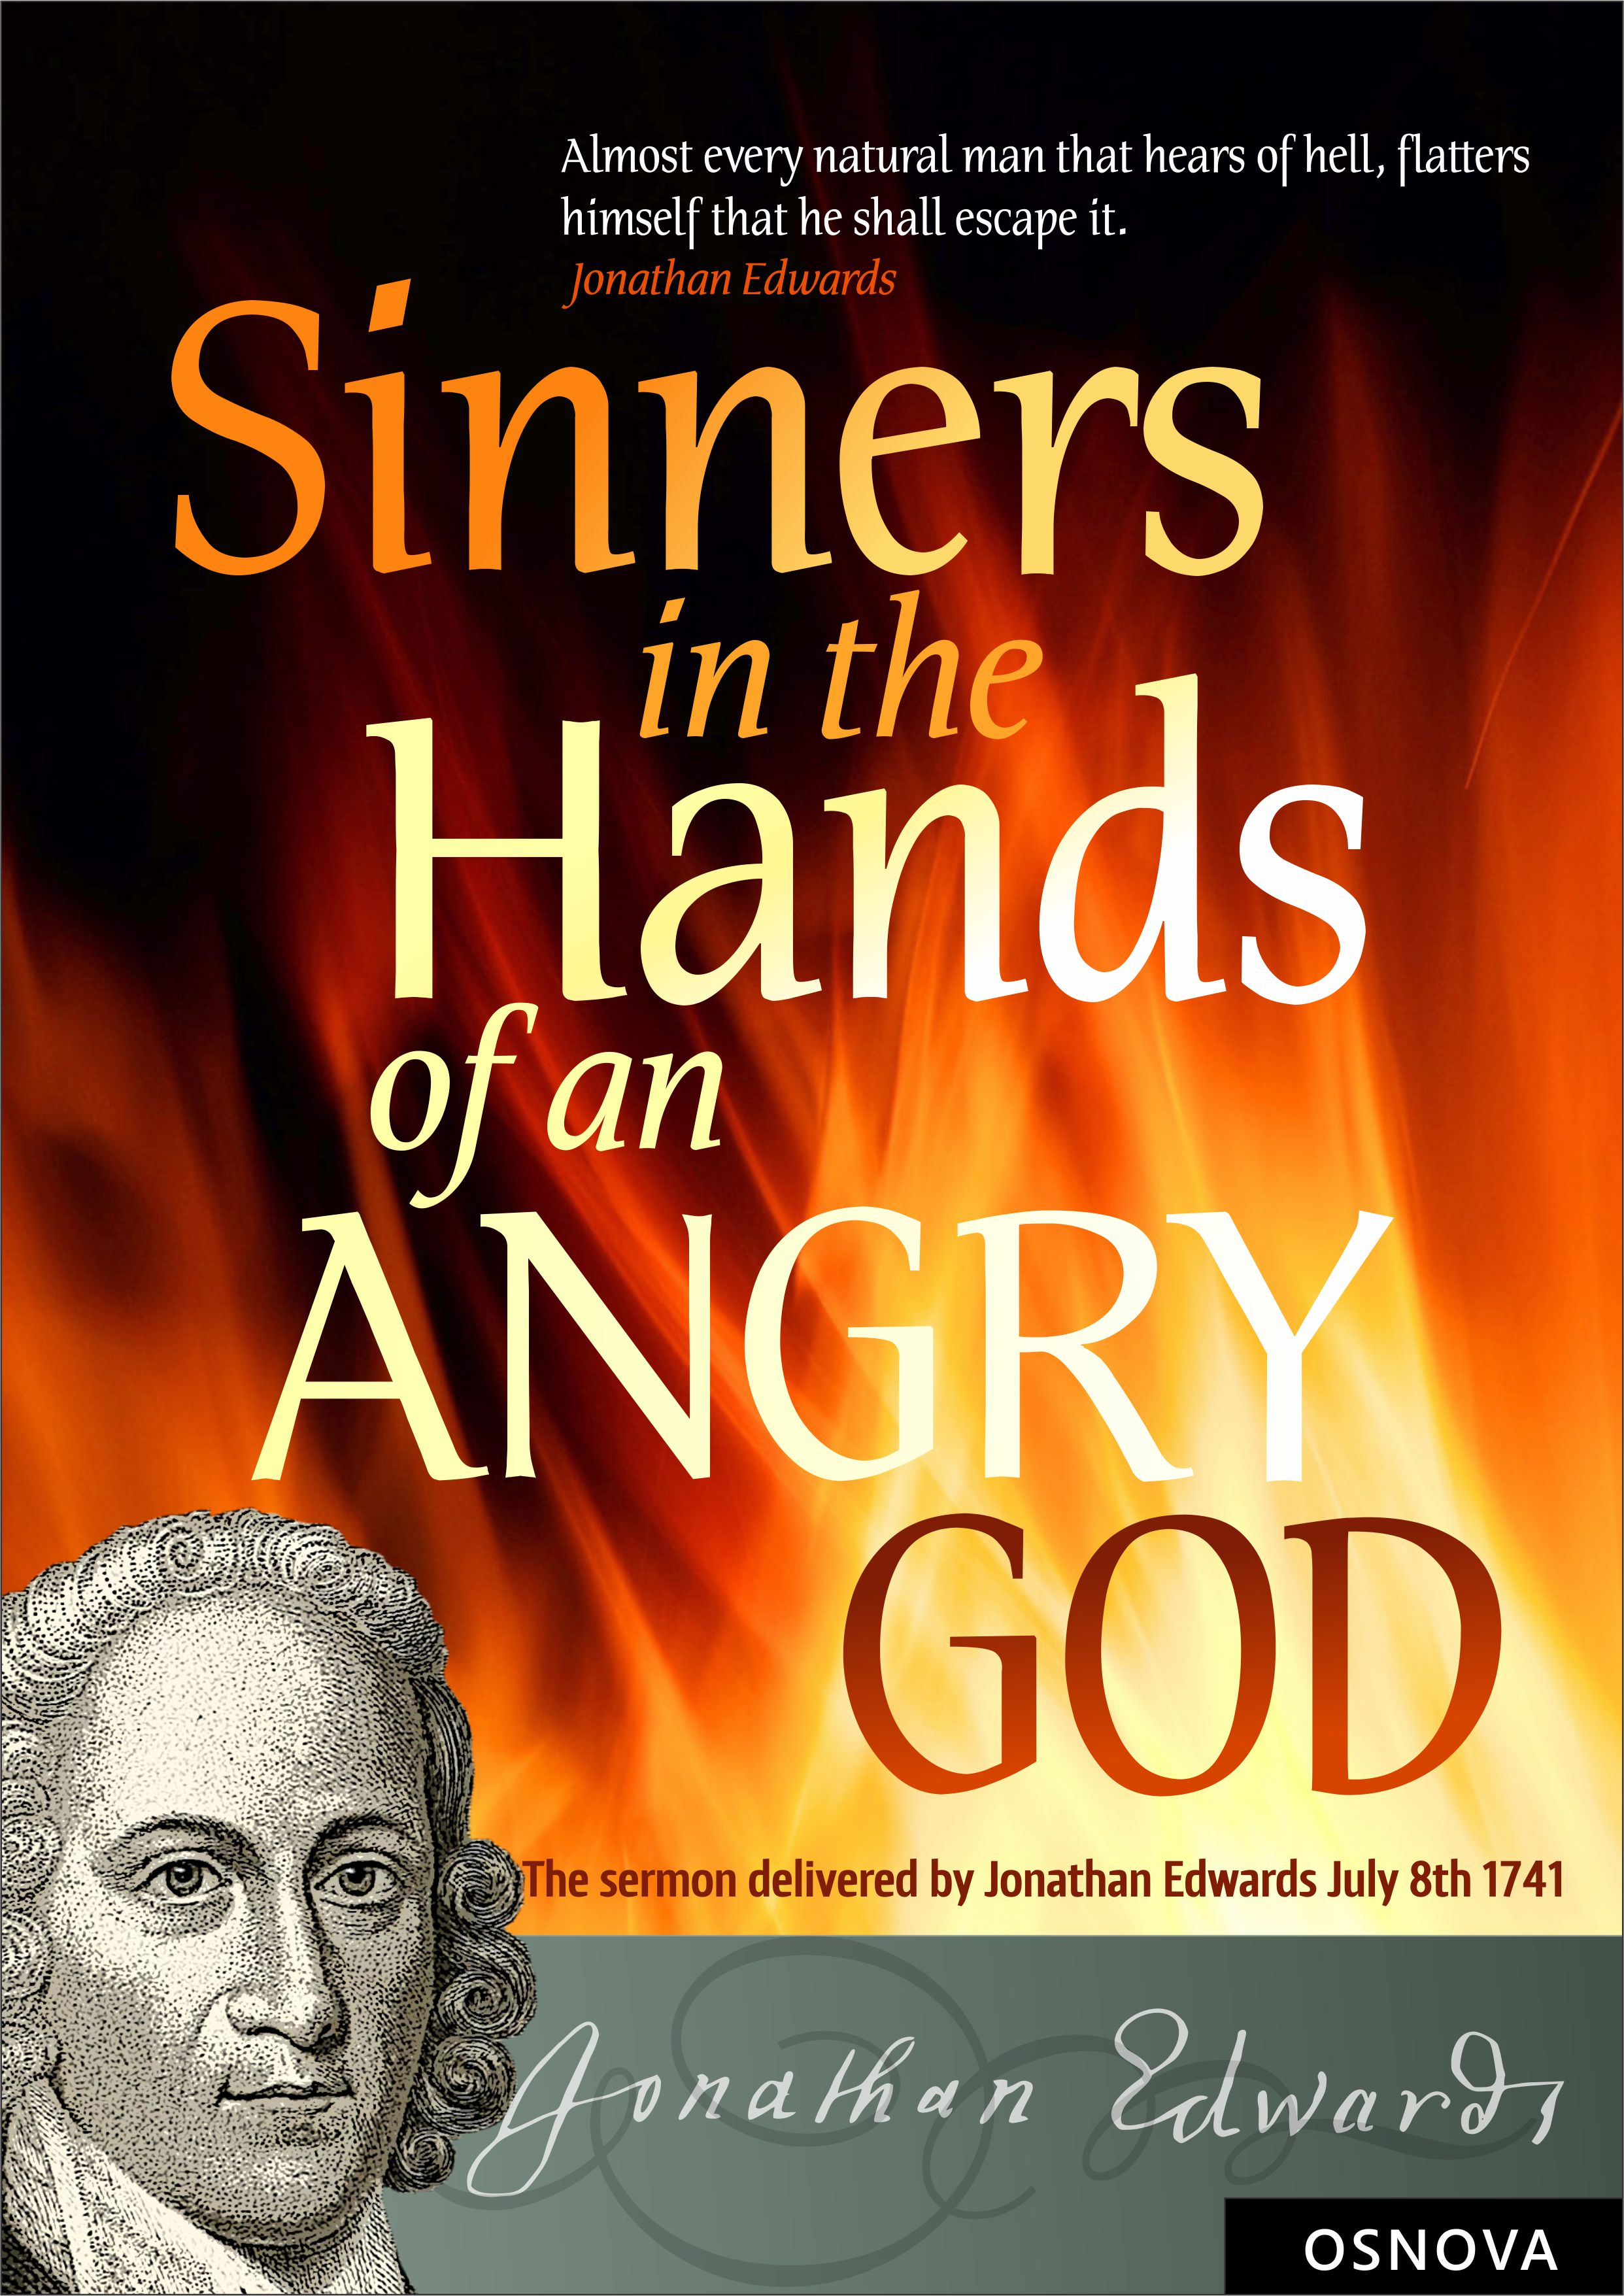 sinners in the hands of an angry god theme